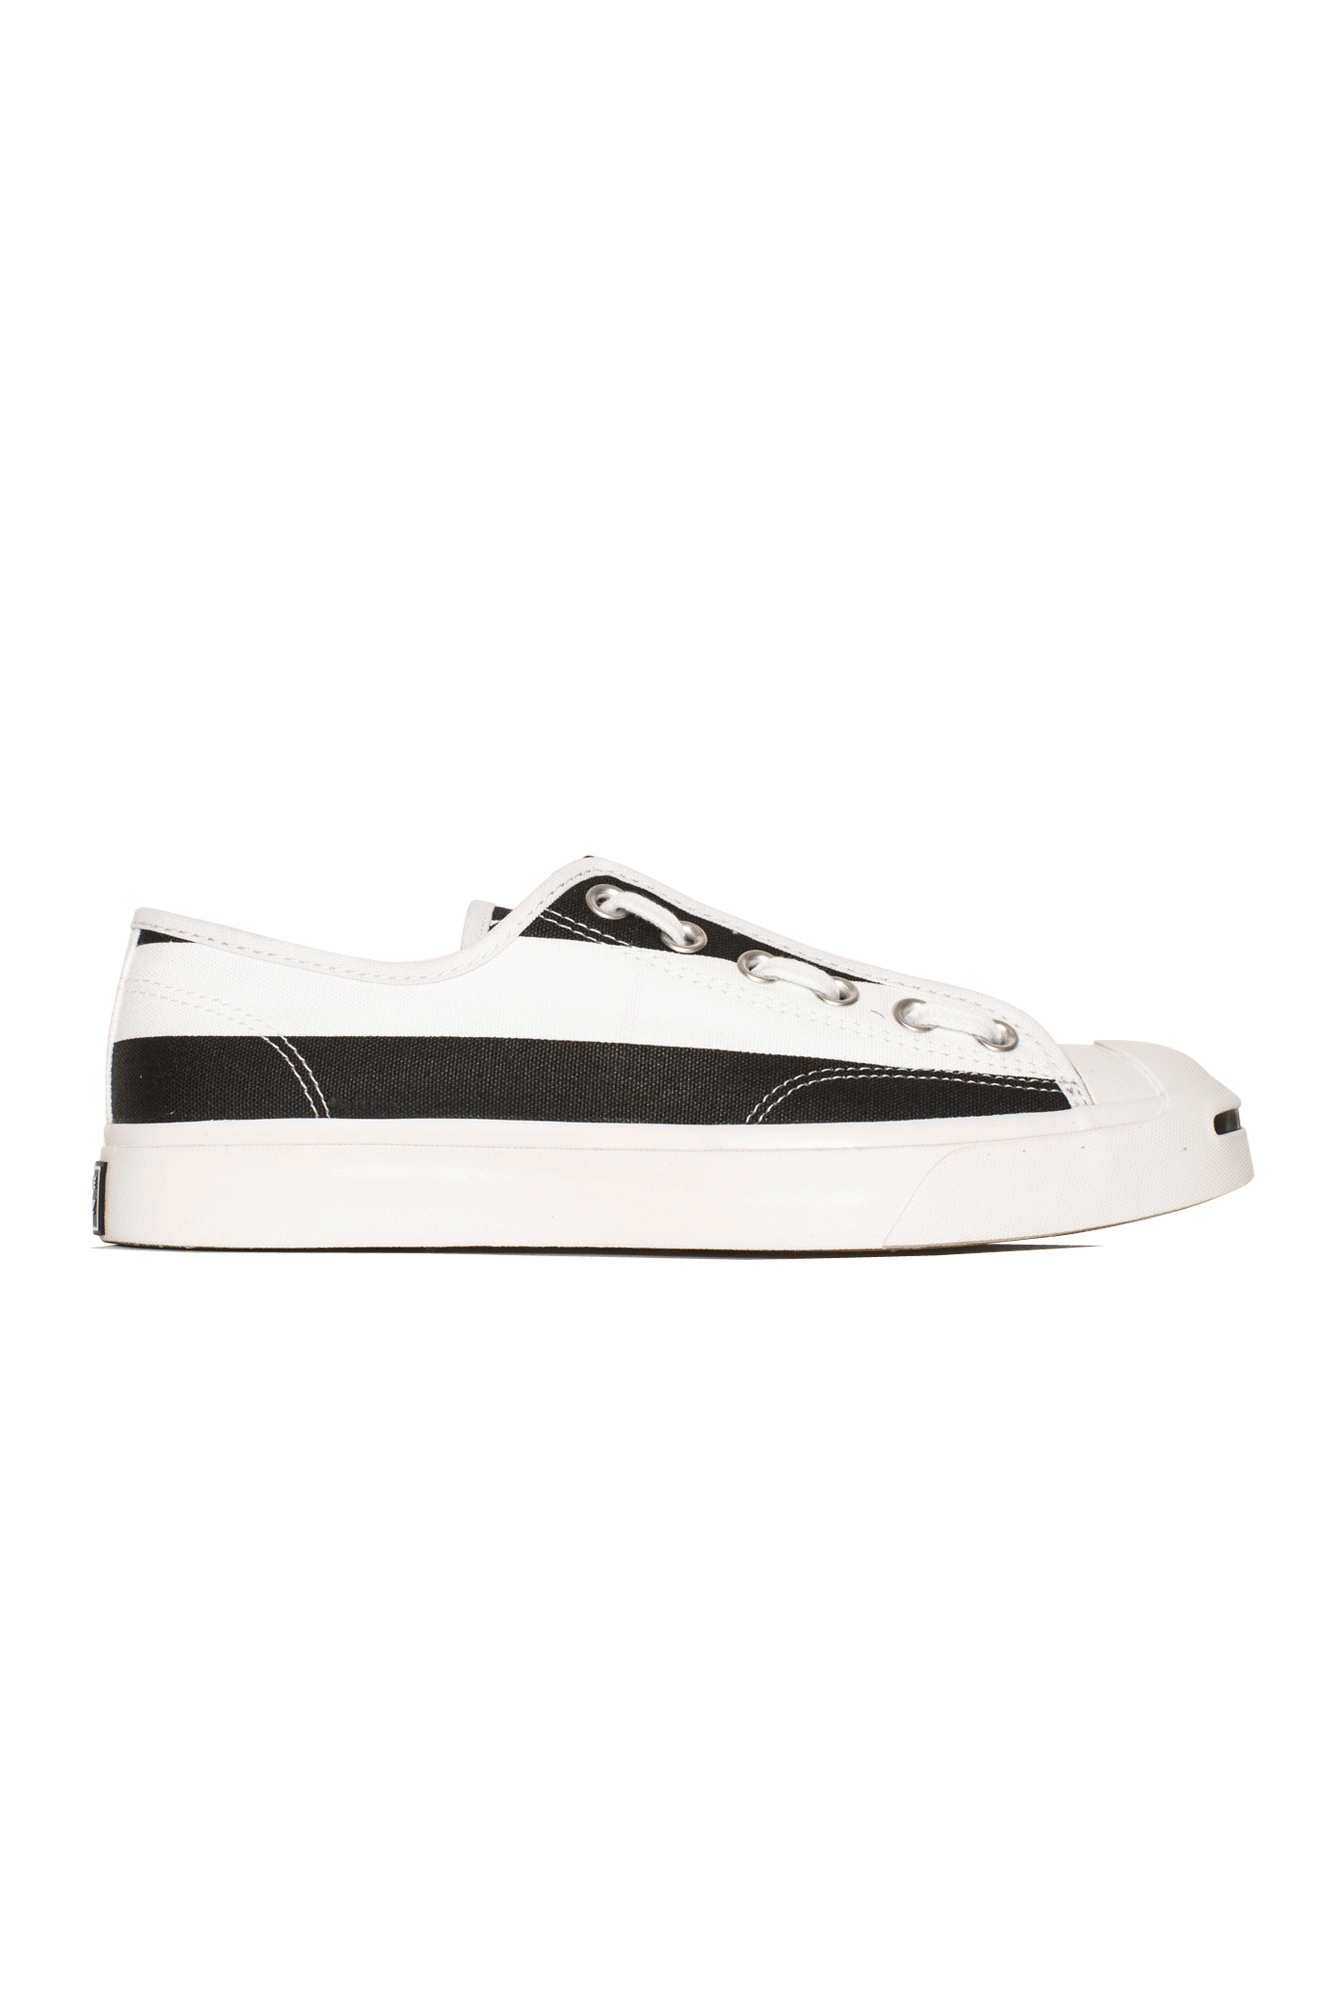 Converse Sneakers Jack Purcell Zip x TAKAHIROMIYASHITATheSoloist Black 164835C#000#C0010#7 - One Block Down